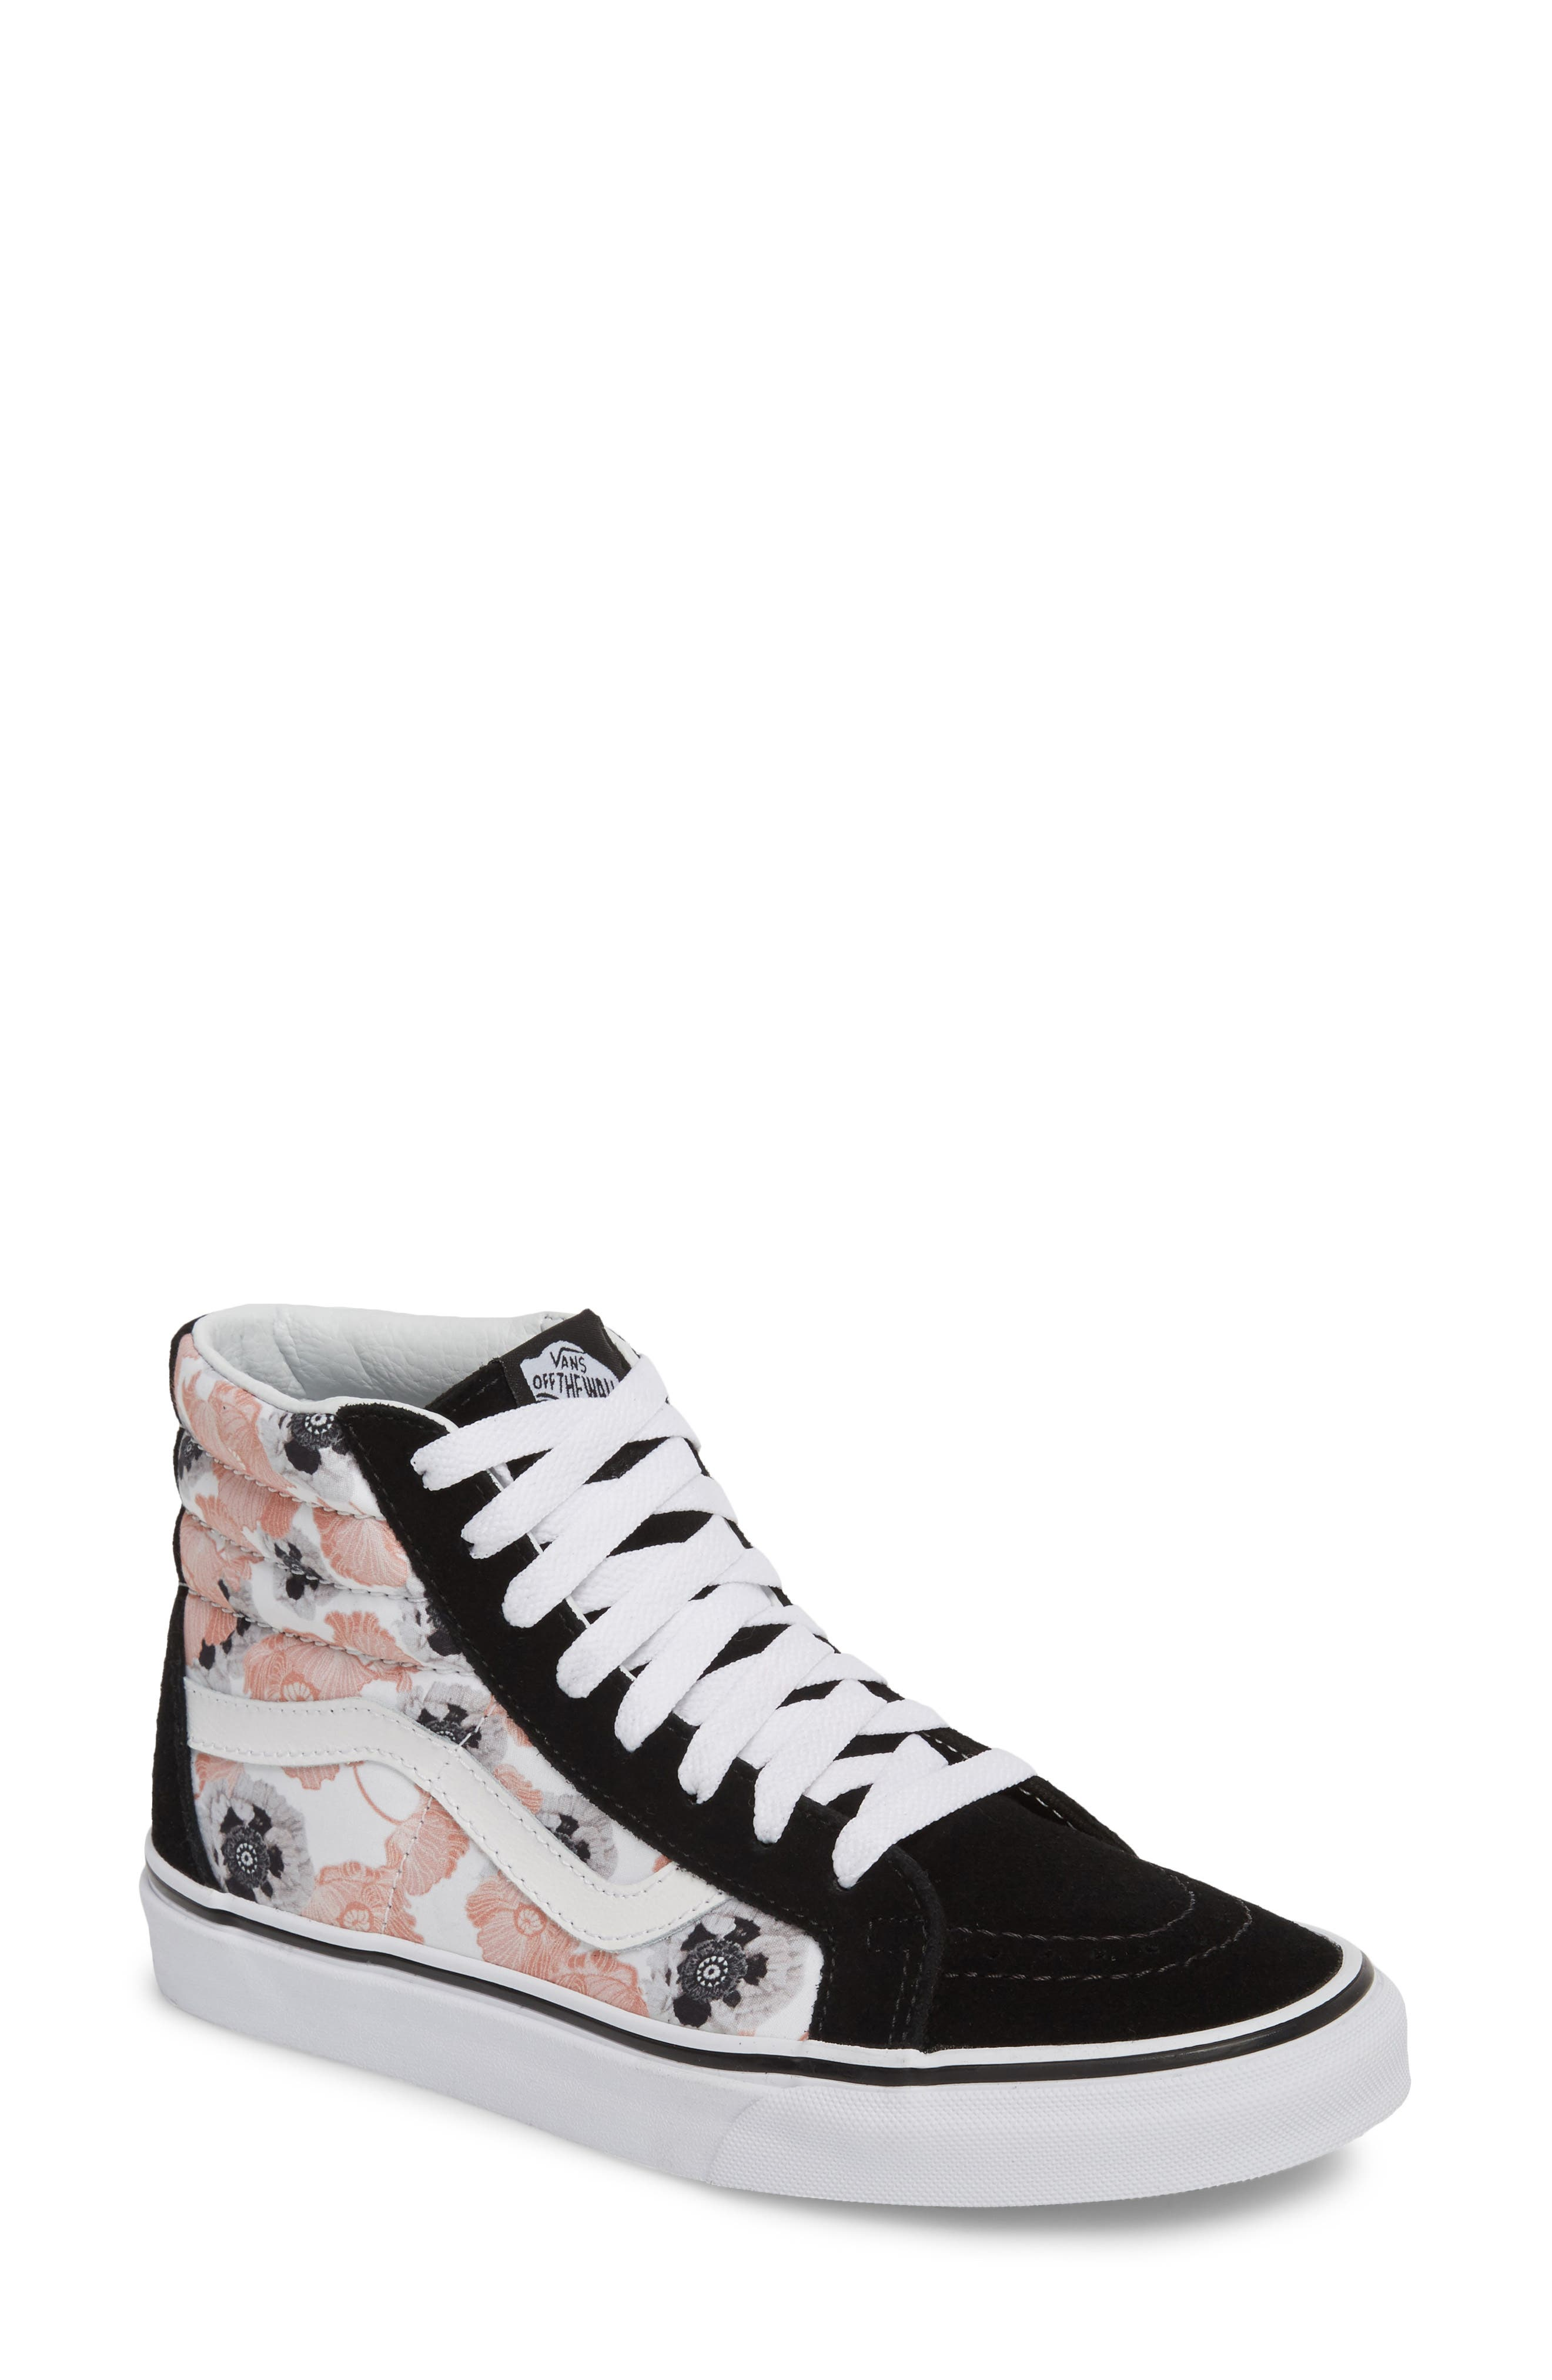 white leather vans womens